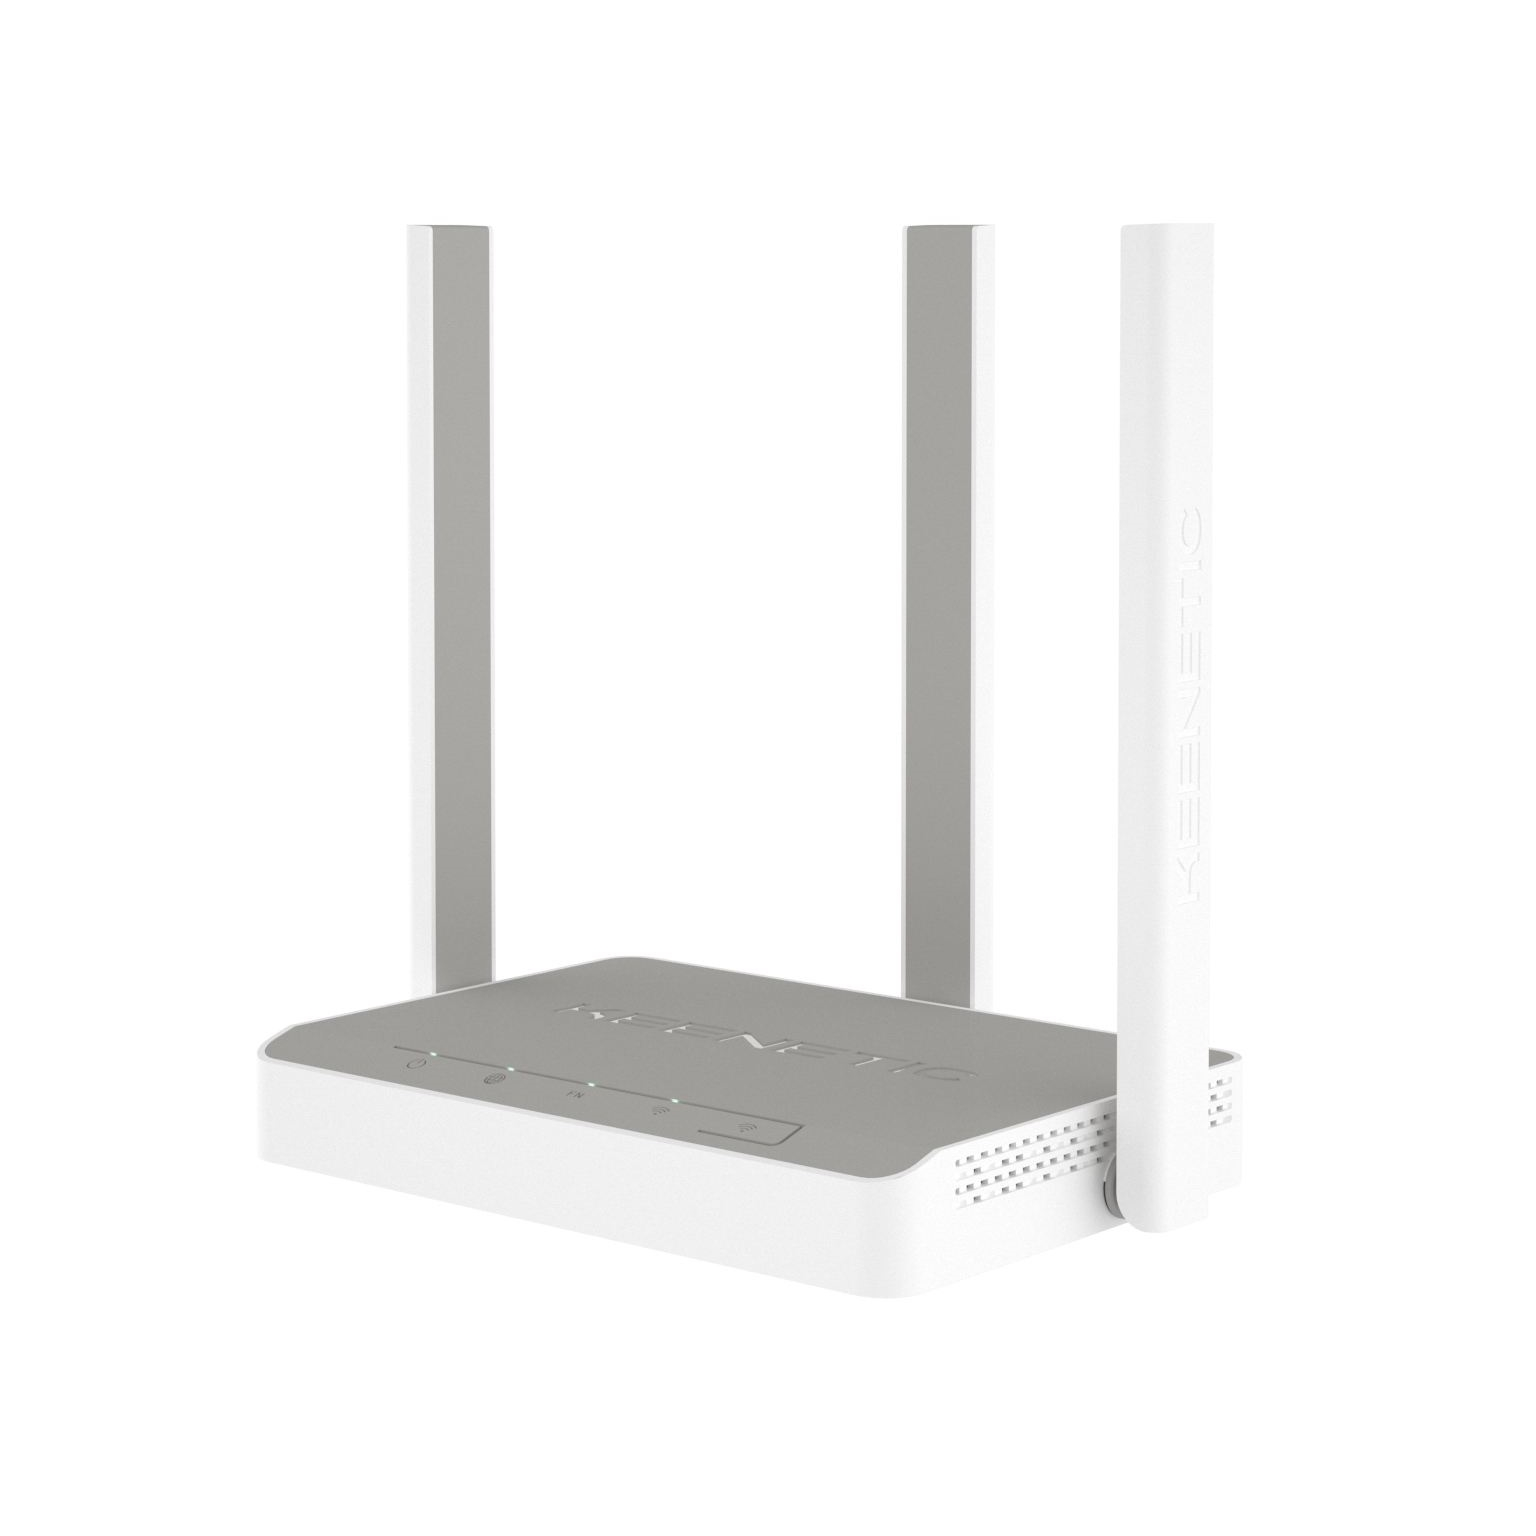 KEENETIC City KN-1510-01TR 750mbps AC750 Dual Band Mesafe Genişletici EV Ofis Tipi Access Point Router 3x 5dbi sabit ant